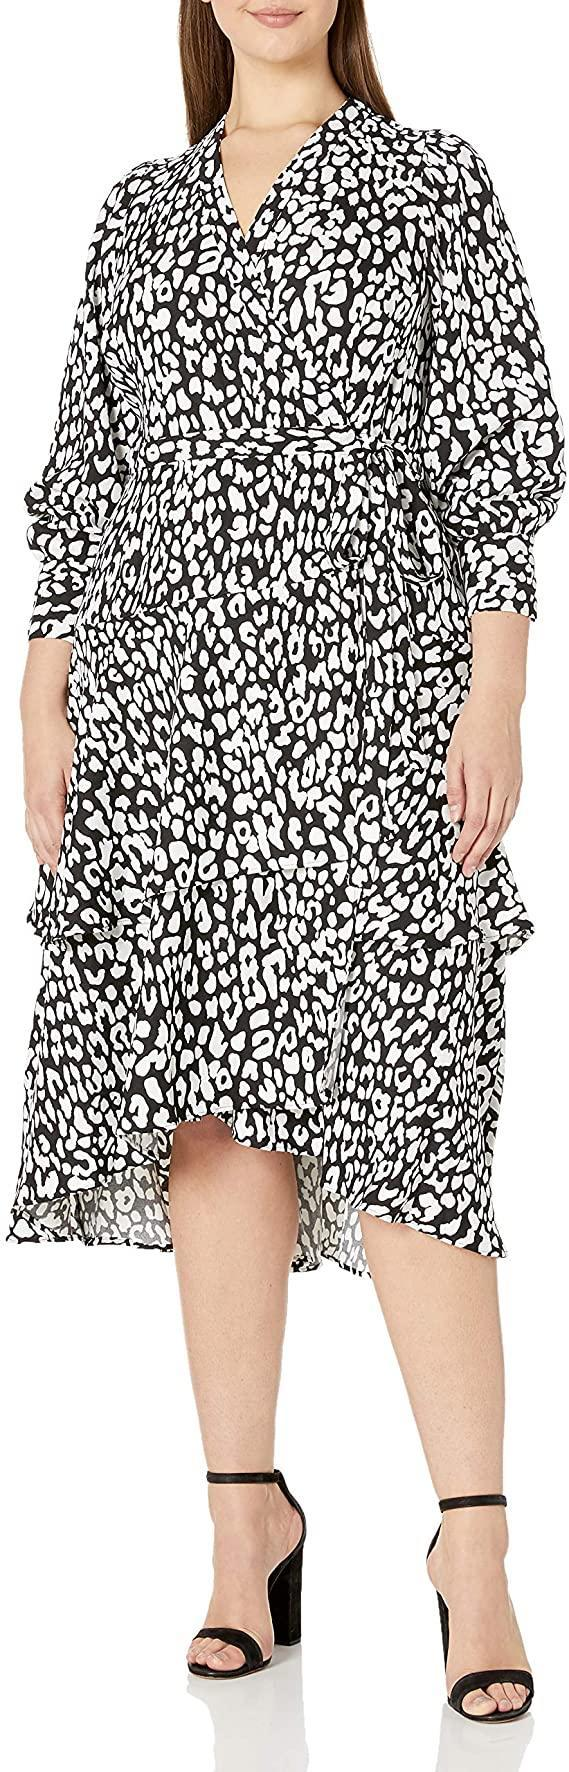 "<br><br><strong>Calvin Klein</strong> Plus Size Long Sleeve Tiered Wrap Dress, $, available at <a href=""https://amzn.to/2ZBejkp"" rel=""nofollow noopener"" target=""_blank"" data-ylk=""slk:Amazon"" class=""link rapid-noclick-resp"">Amazon</a>"